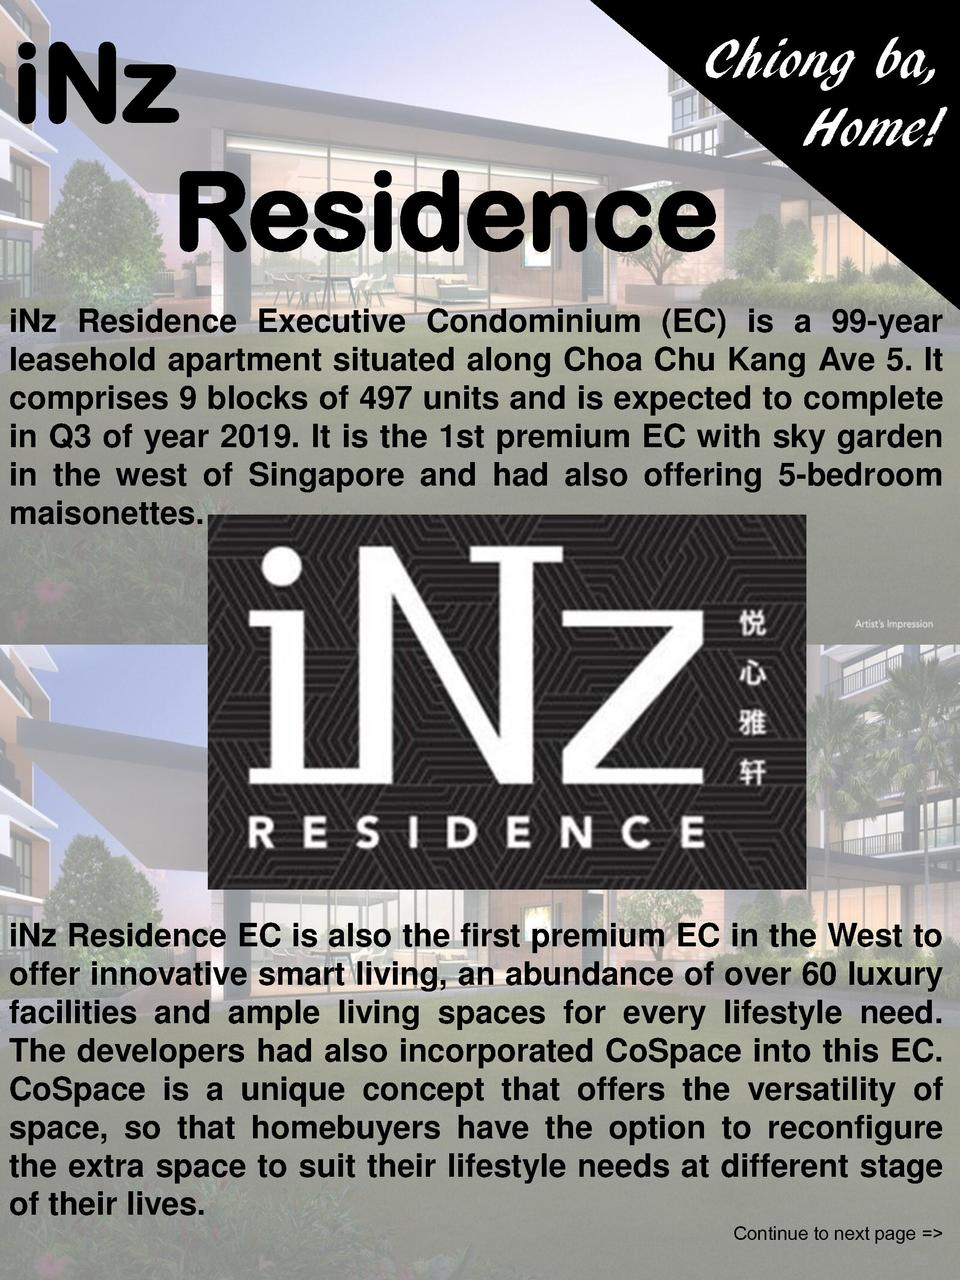 iNz Residence  Chiong ba, Home   iNz Residence Executive Condominium  EC  is a 99-year leasehold apartment situated along ...